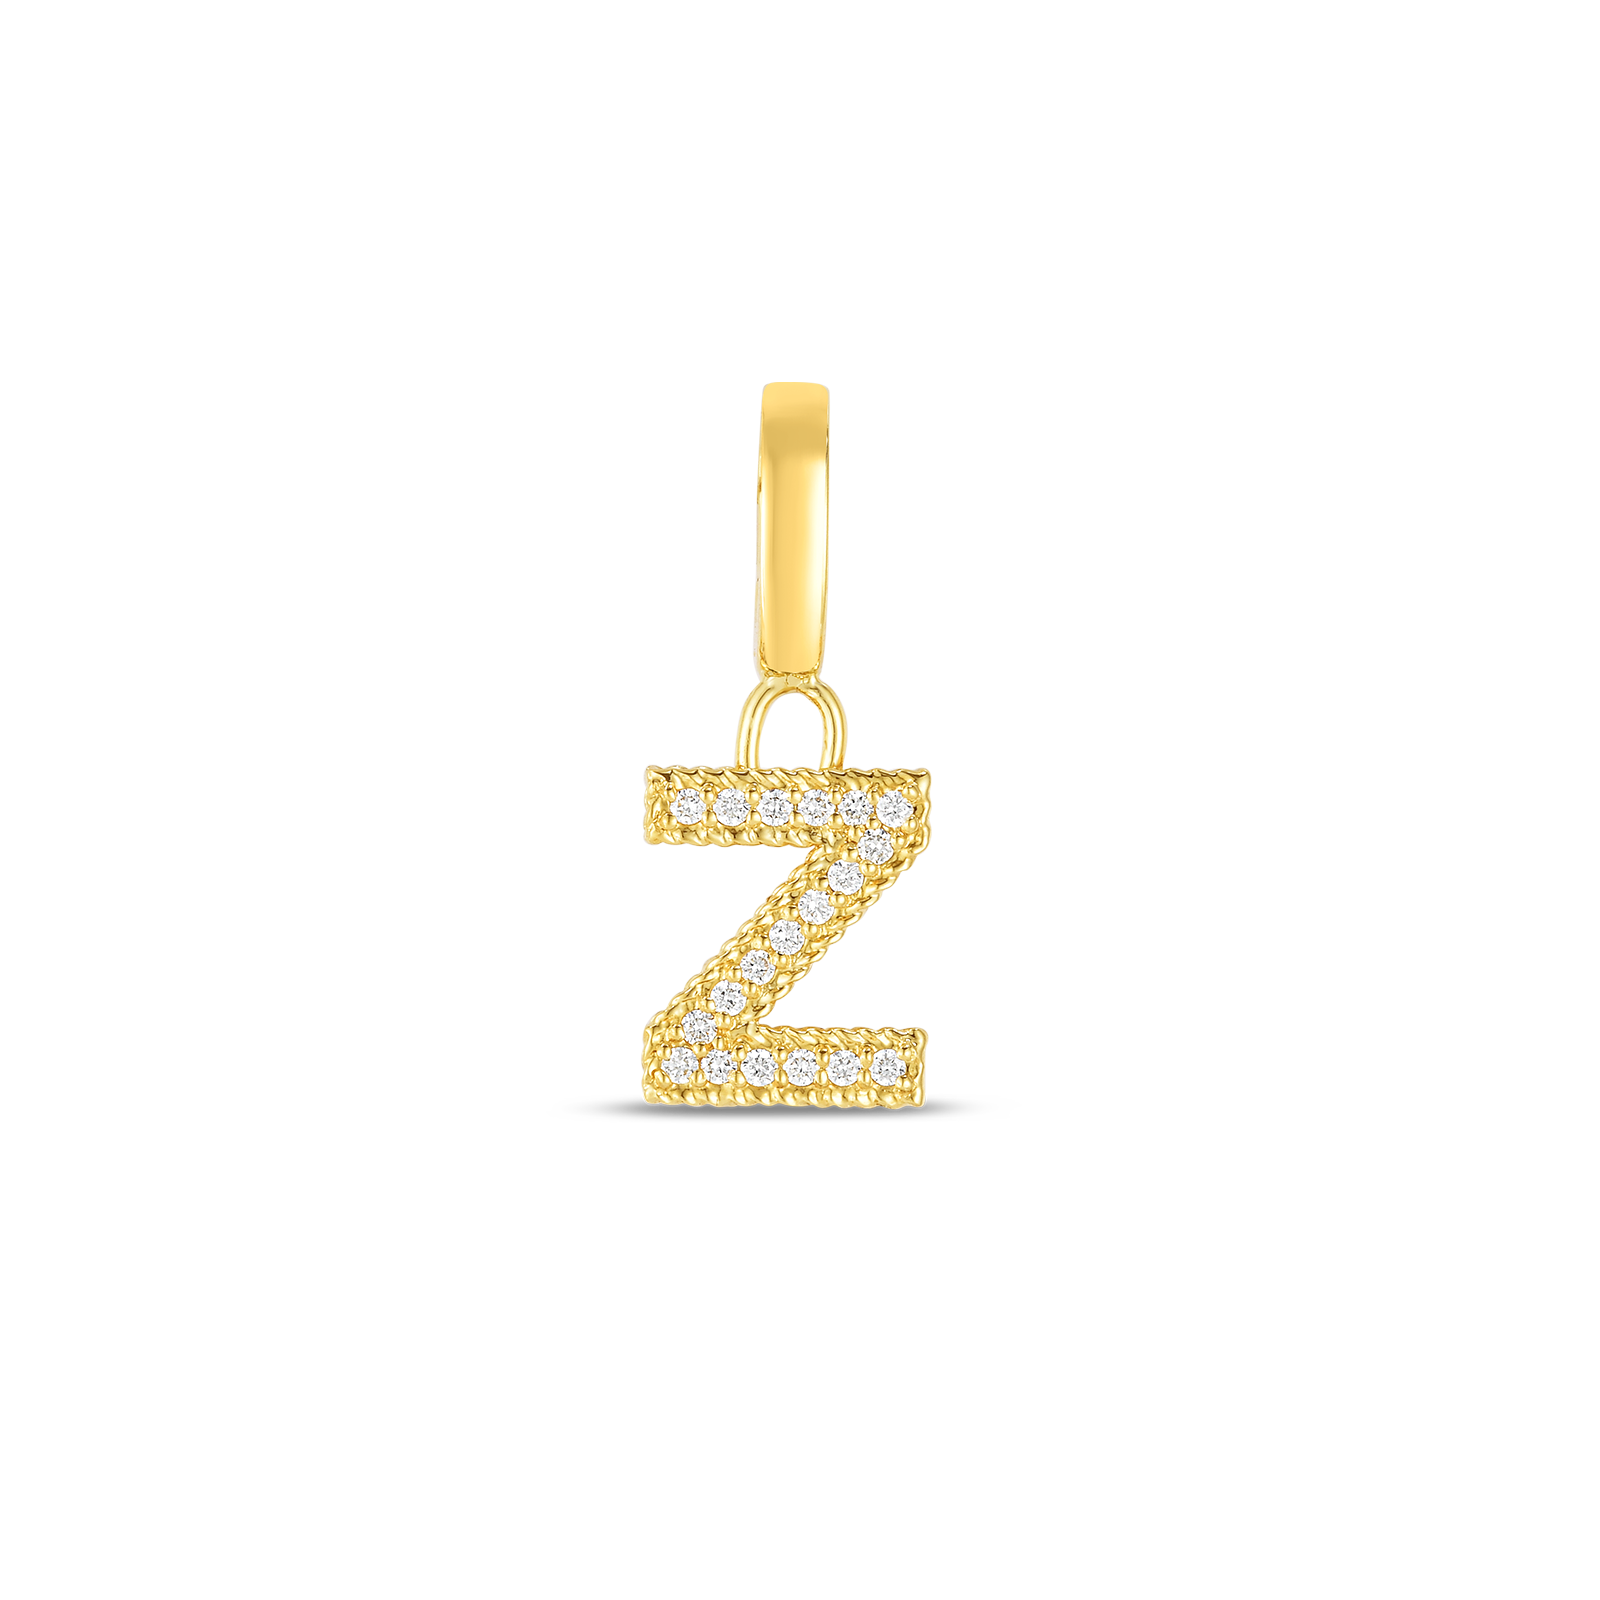 18k Gold & Diamond Princess Letter 'Z' Charm